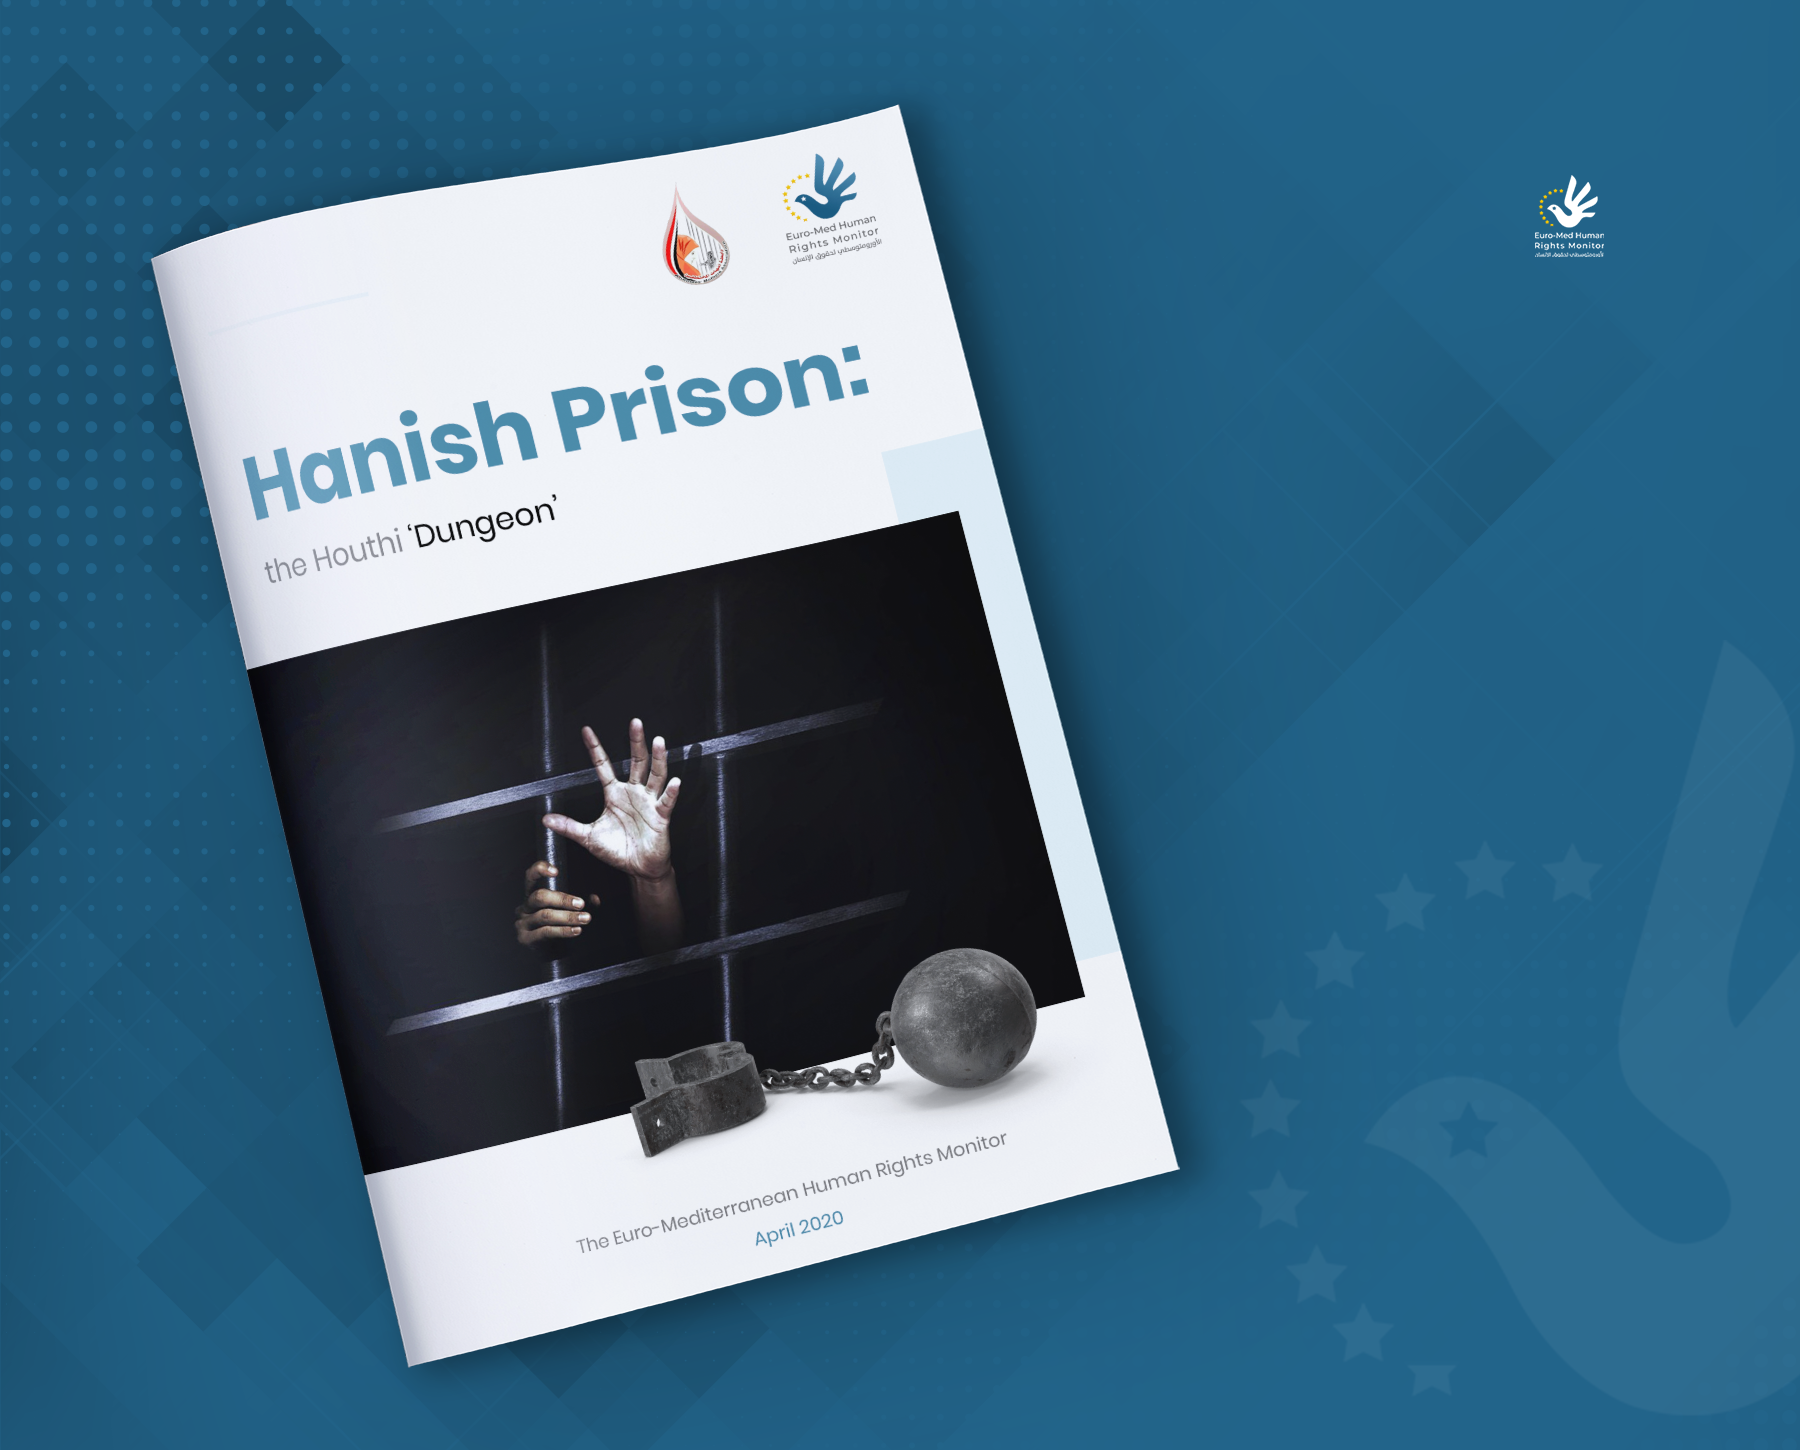 Hanish Prison: the Houthi 'Dungeon'